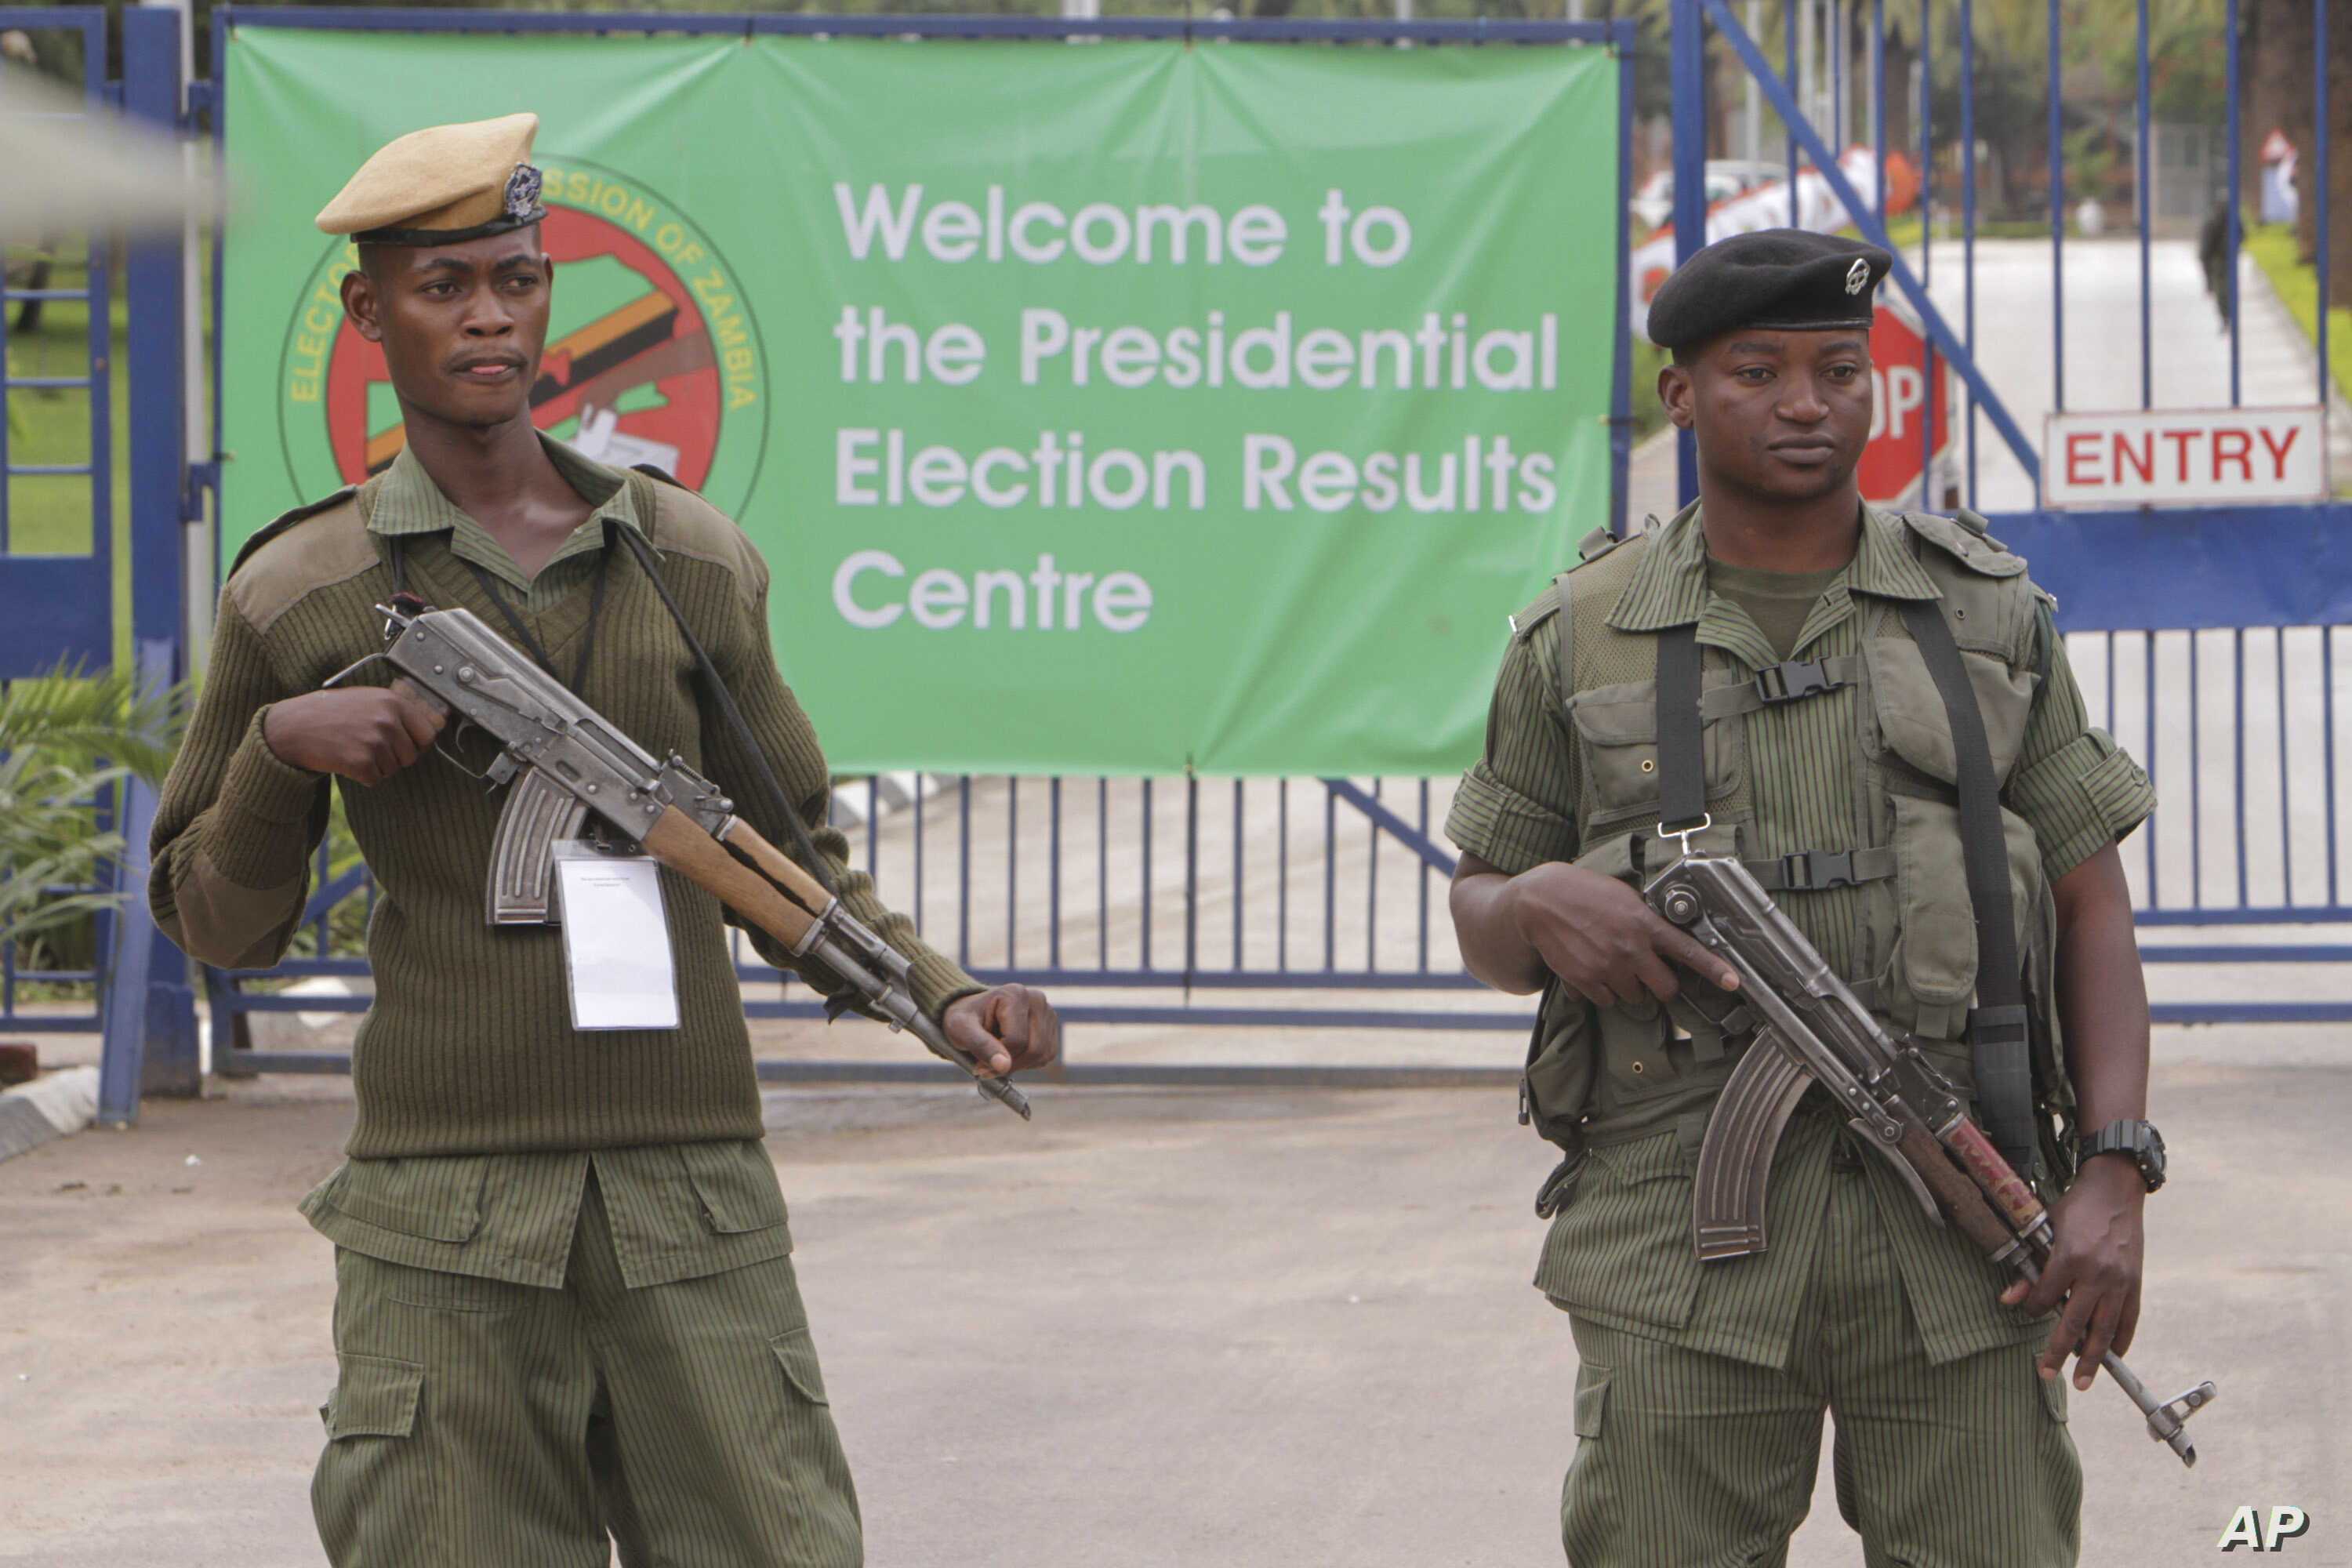 FILE - Armed police officers stand guard outside the presidential election results center in Lusaka, Zambia, Jan, 21, 2015.